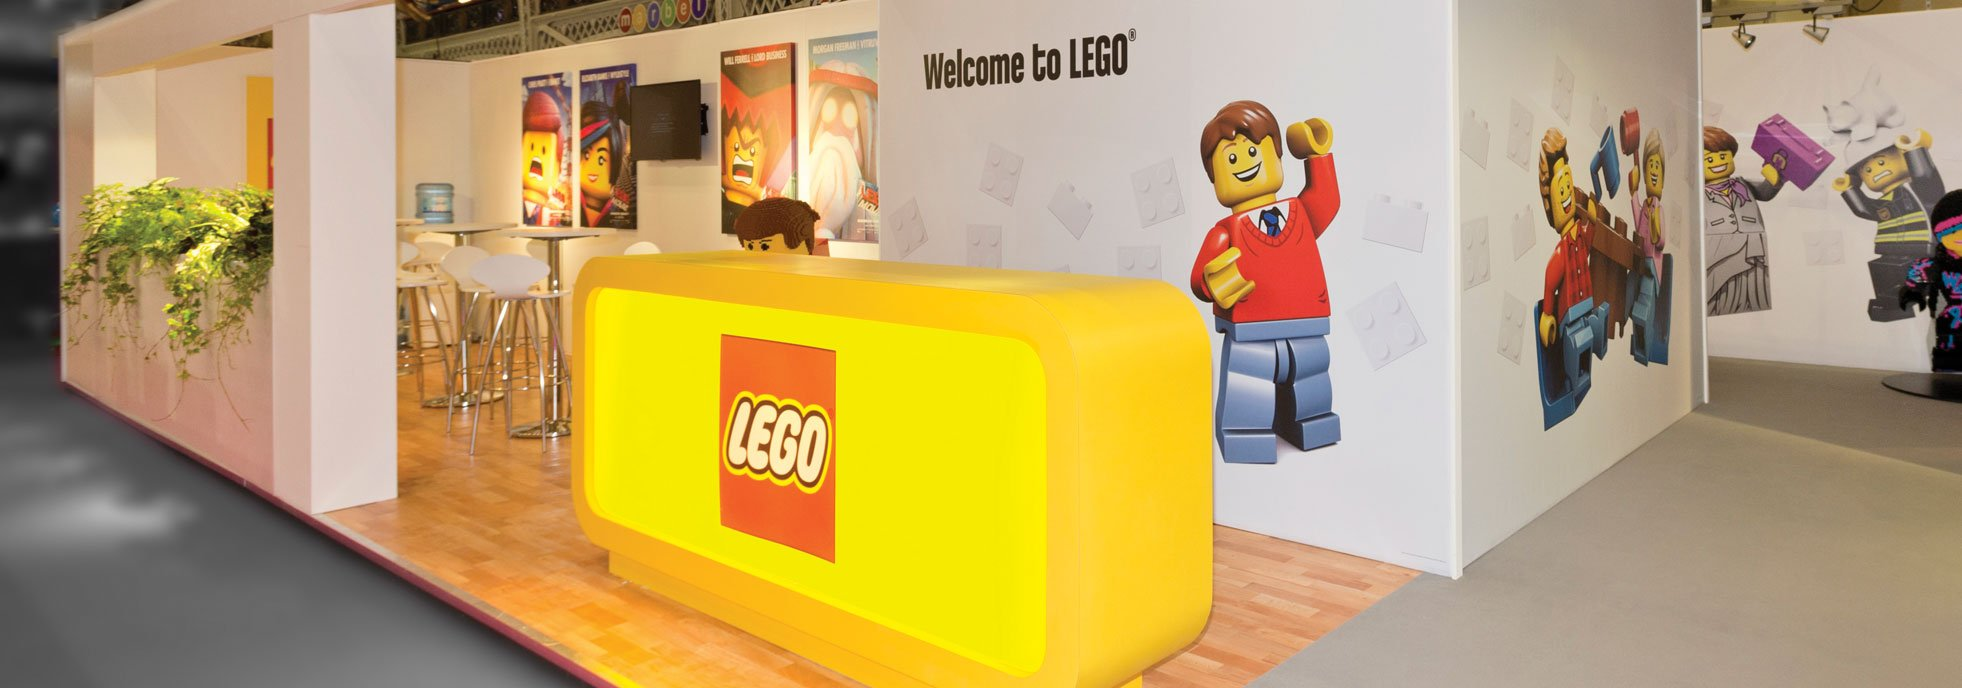 lego-home | Exhibit3sixty